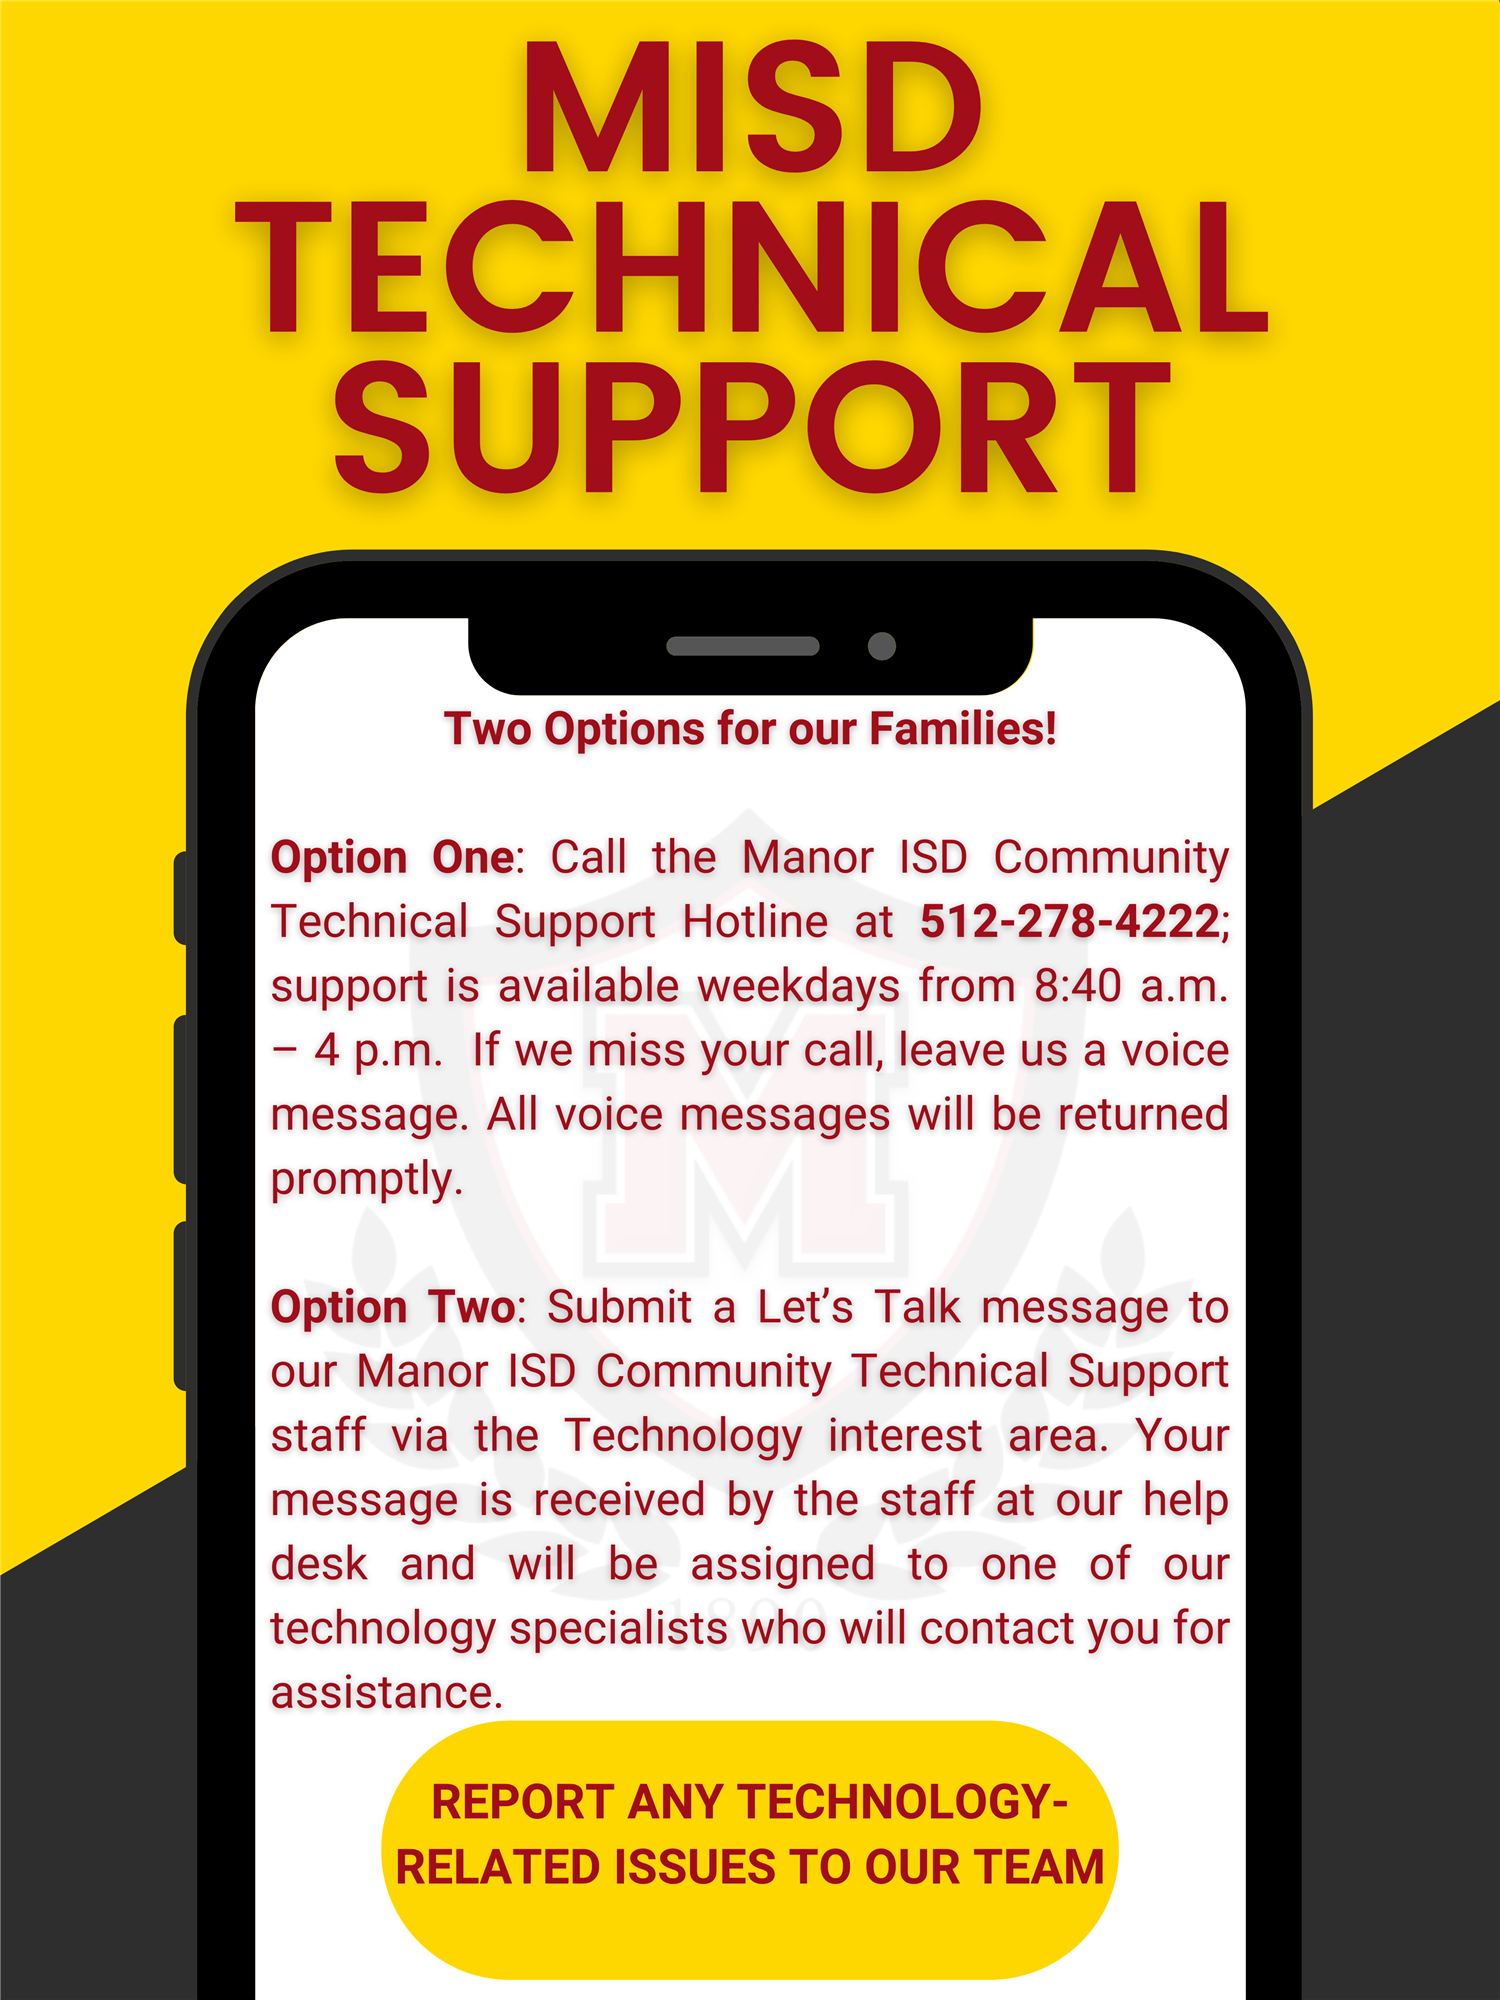 MISD TECHNICAL SUPPORT2.png